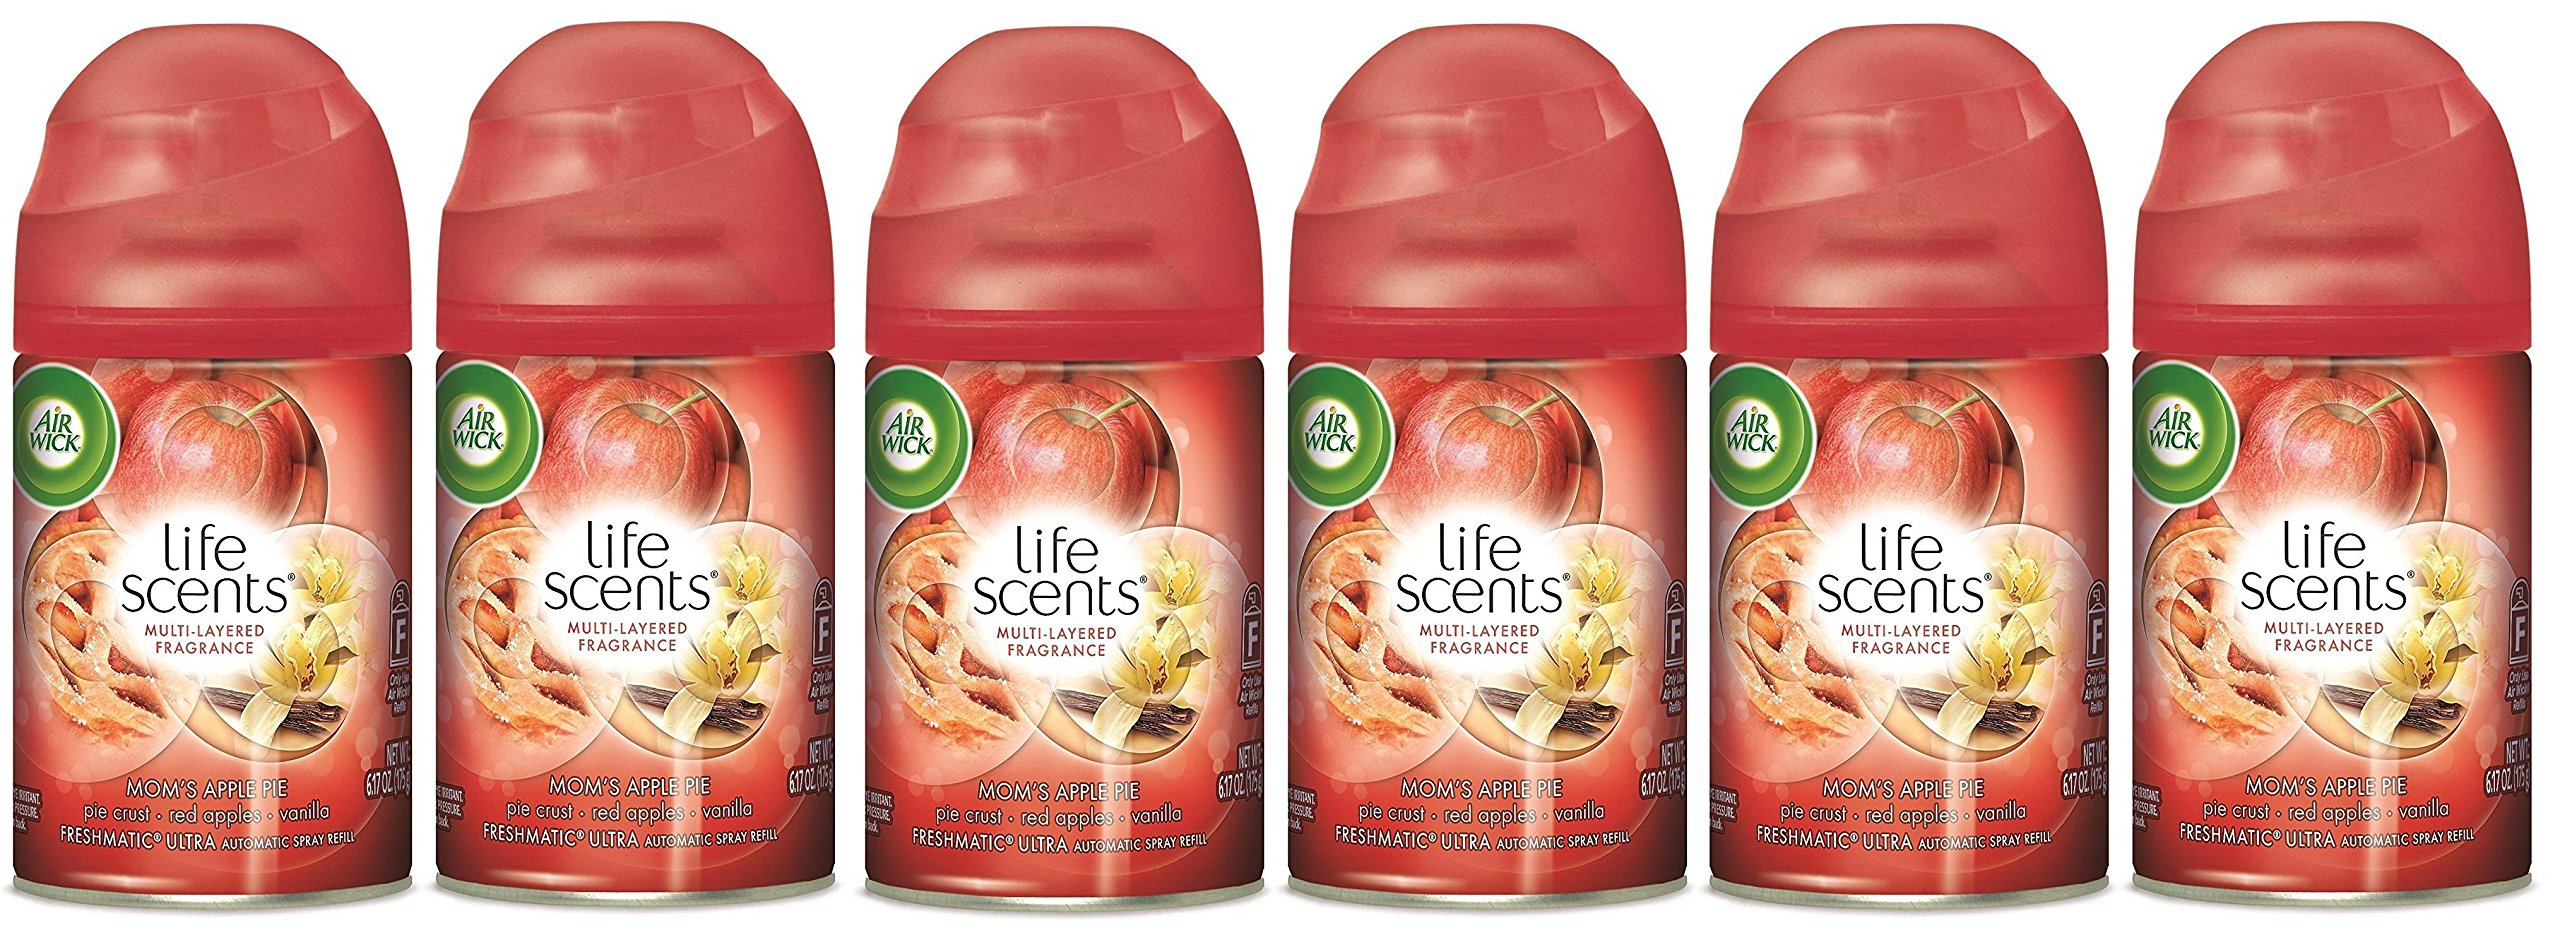 Air Wick Freshmatic Automatic Spray Refill Air Freshener NKEvGS, 2 Refills, 12.34oz, 3 Pack (Moms Apple Pie) by Air Wick